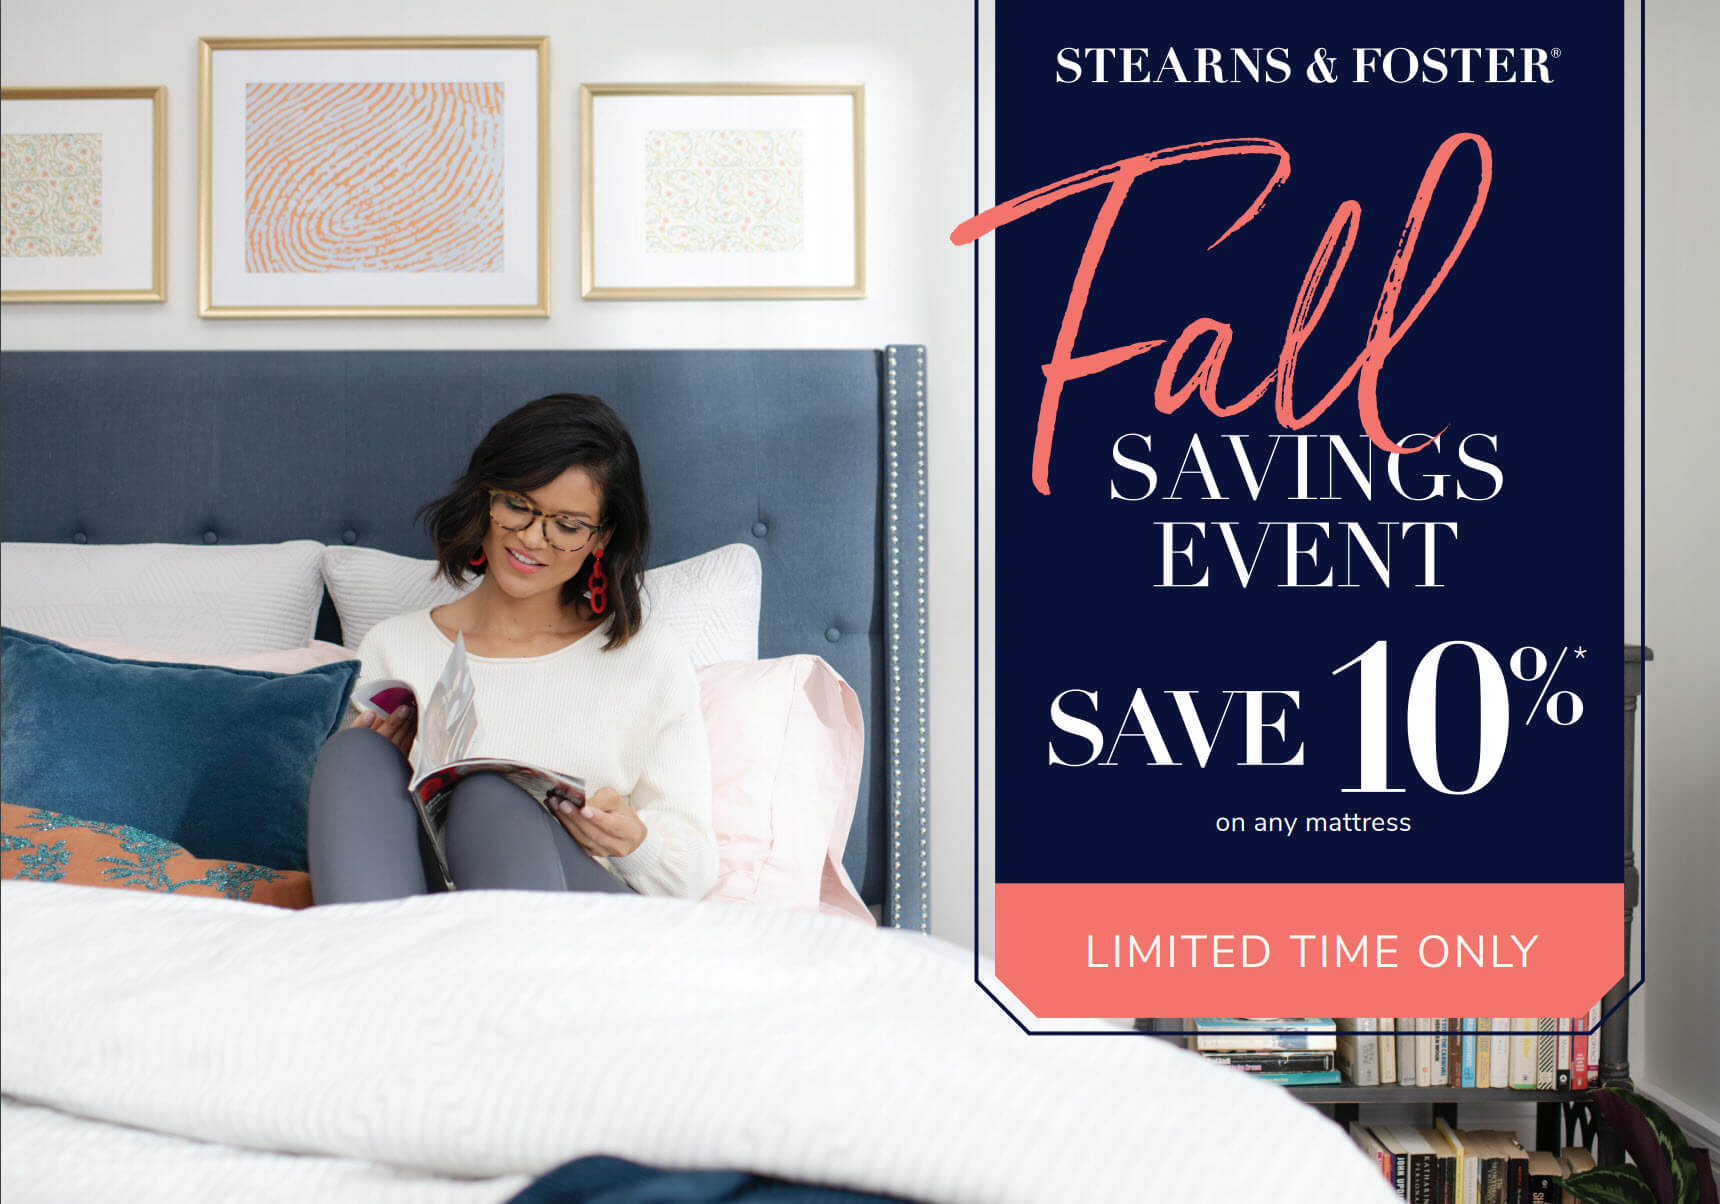 Stearns & Foster Fall Savings Event